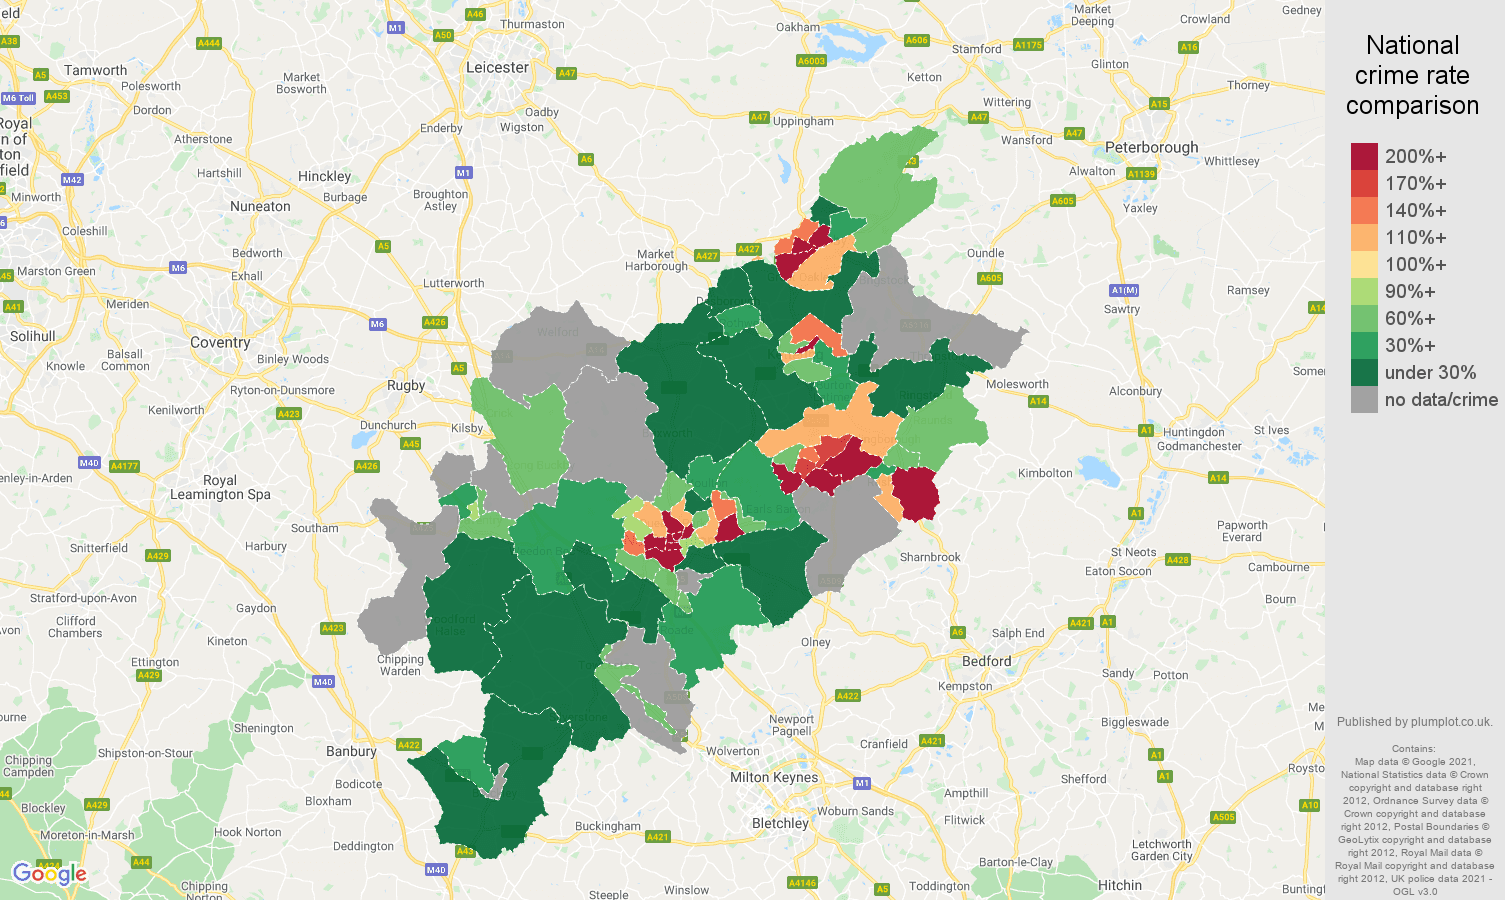 Northampton robbery crime rate comparison map